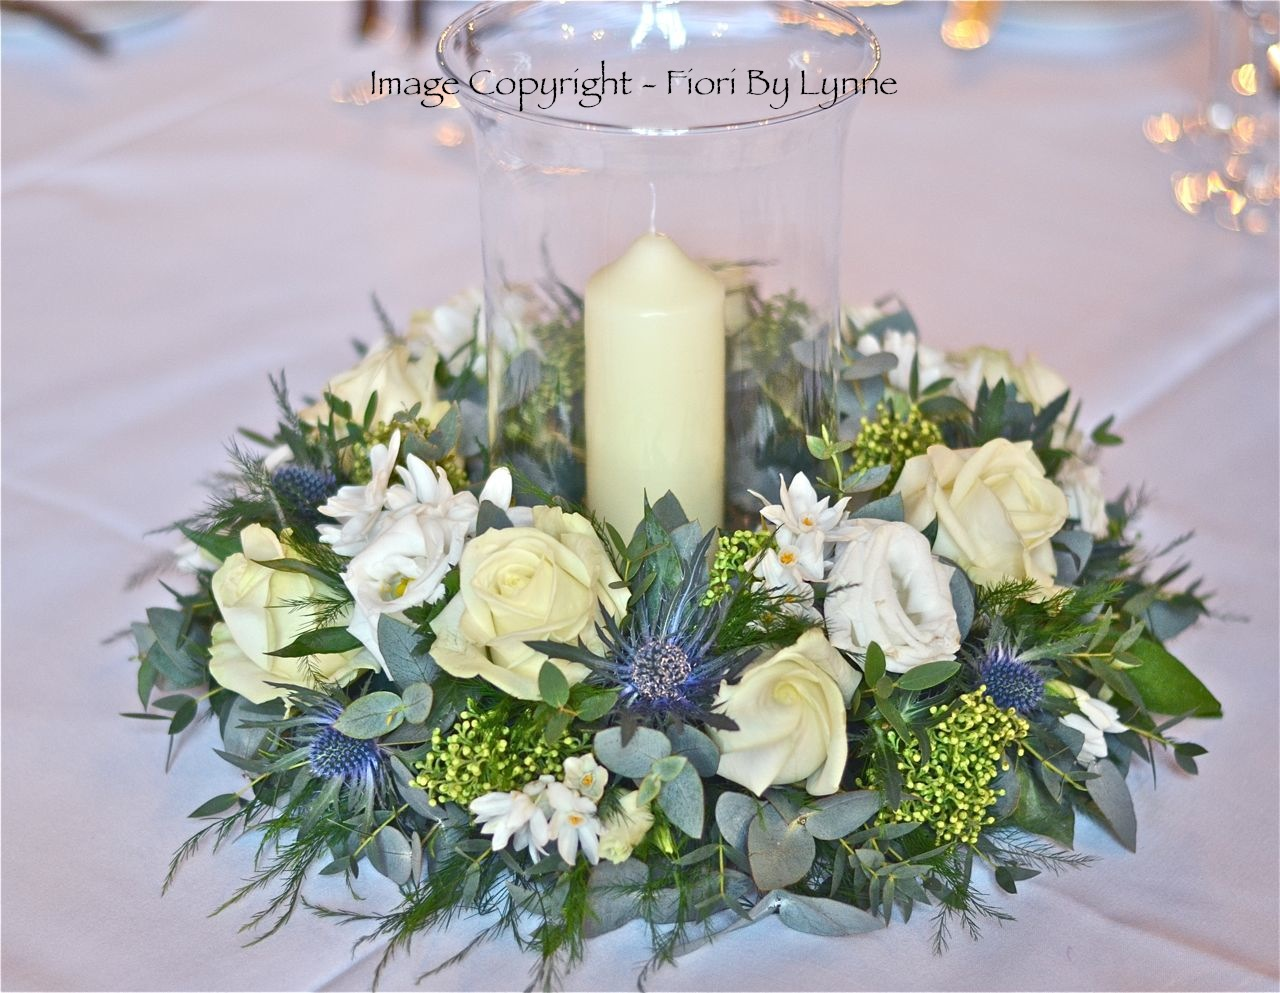 Helens Wedding Flowers Roses And Thistles Rhinefield House